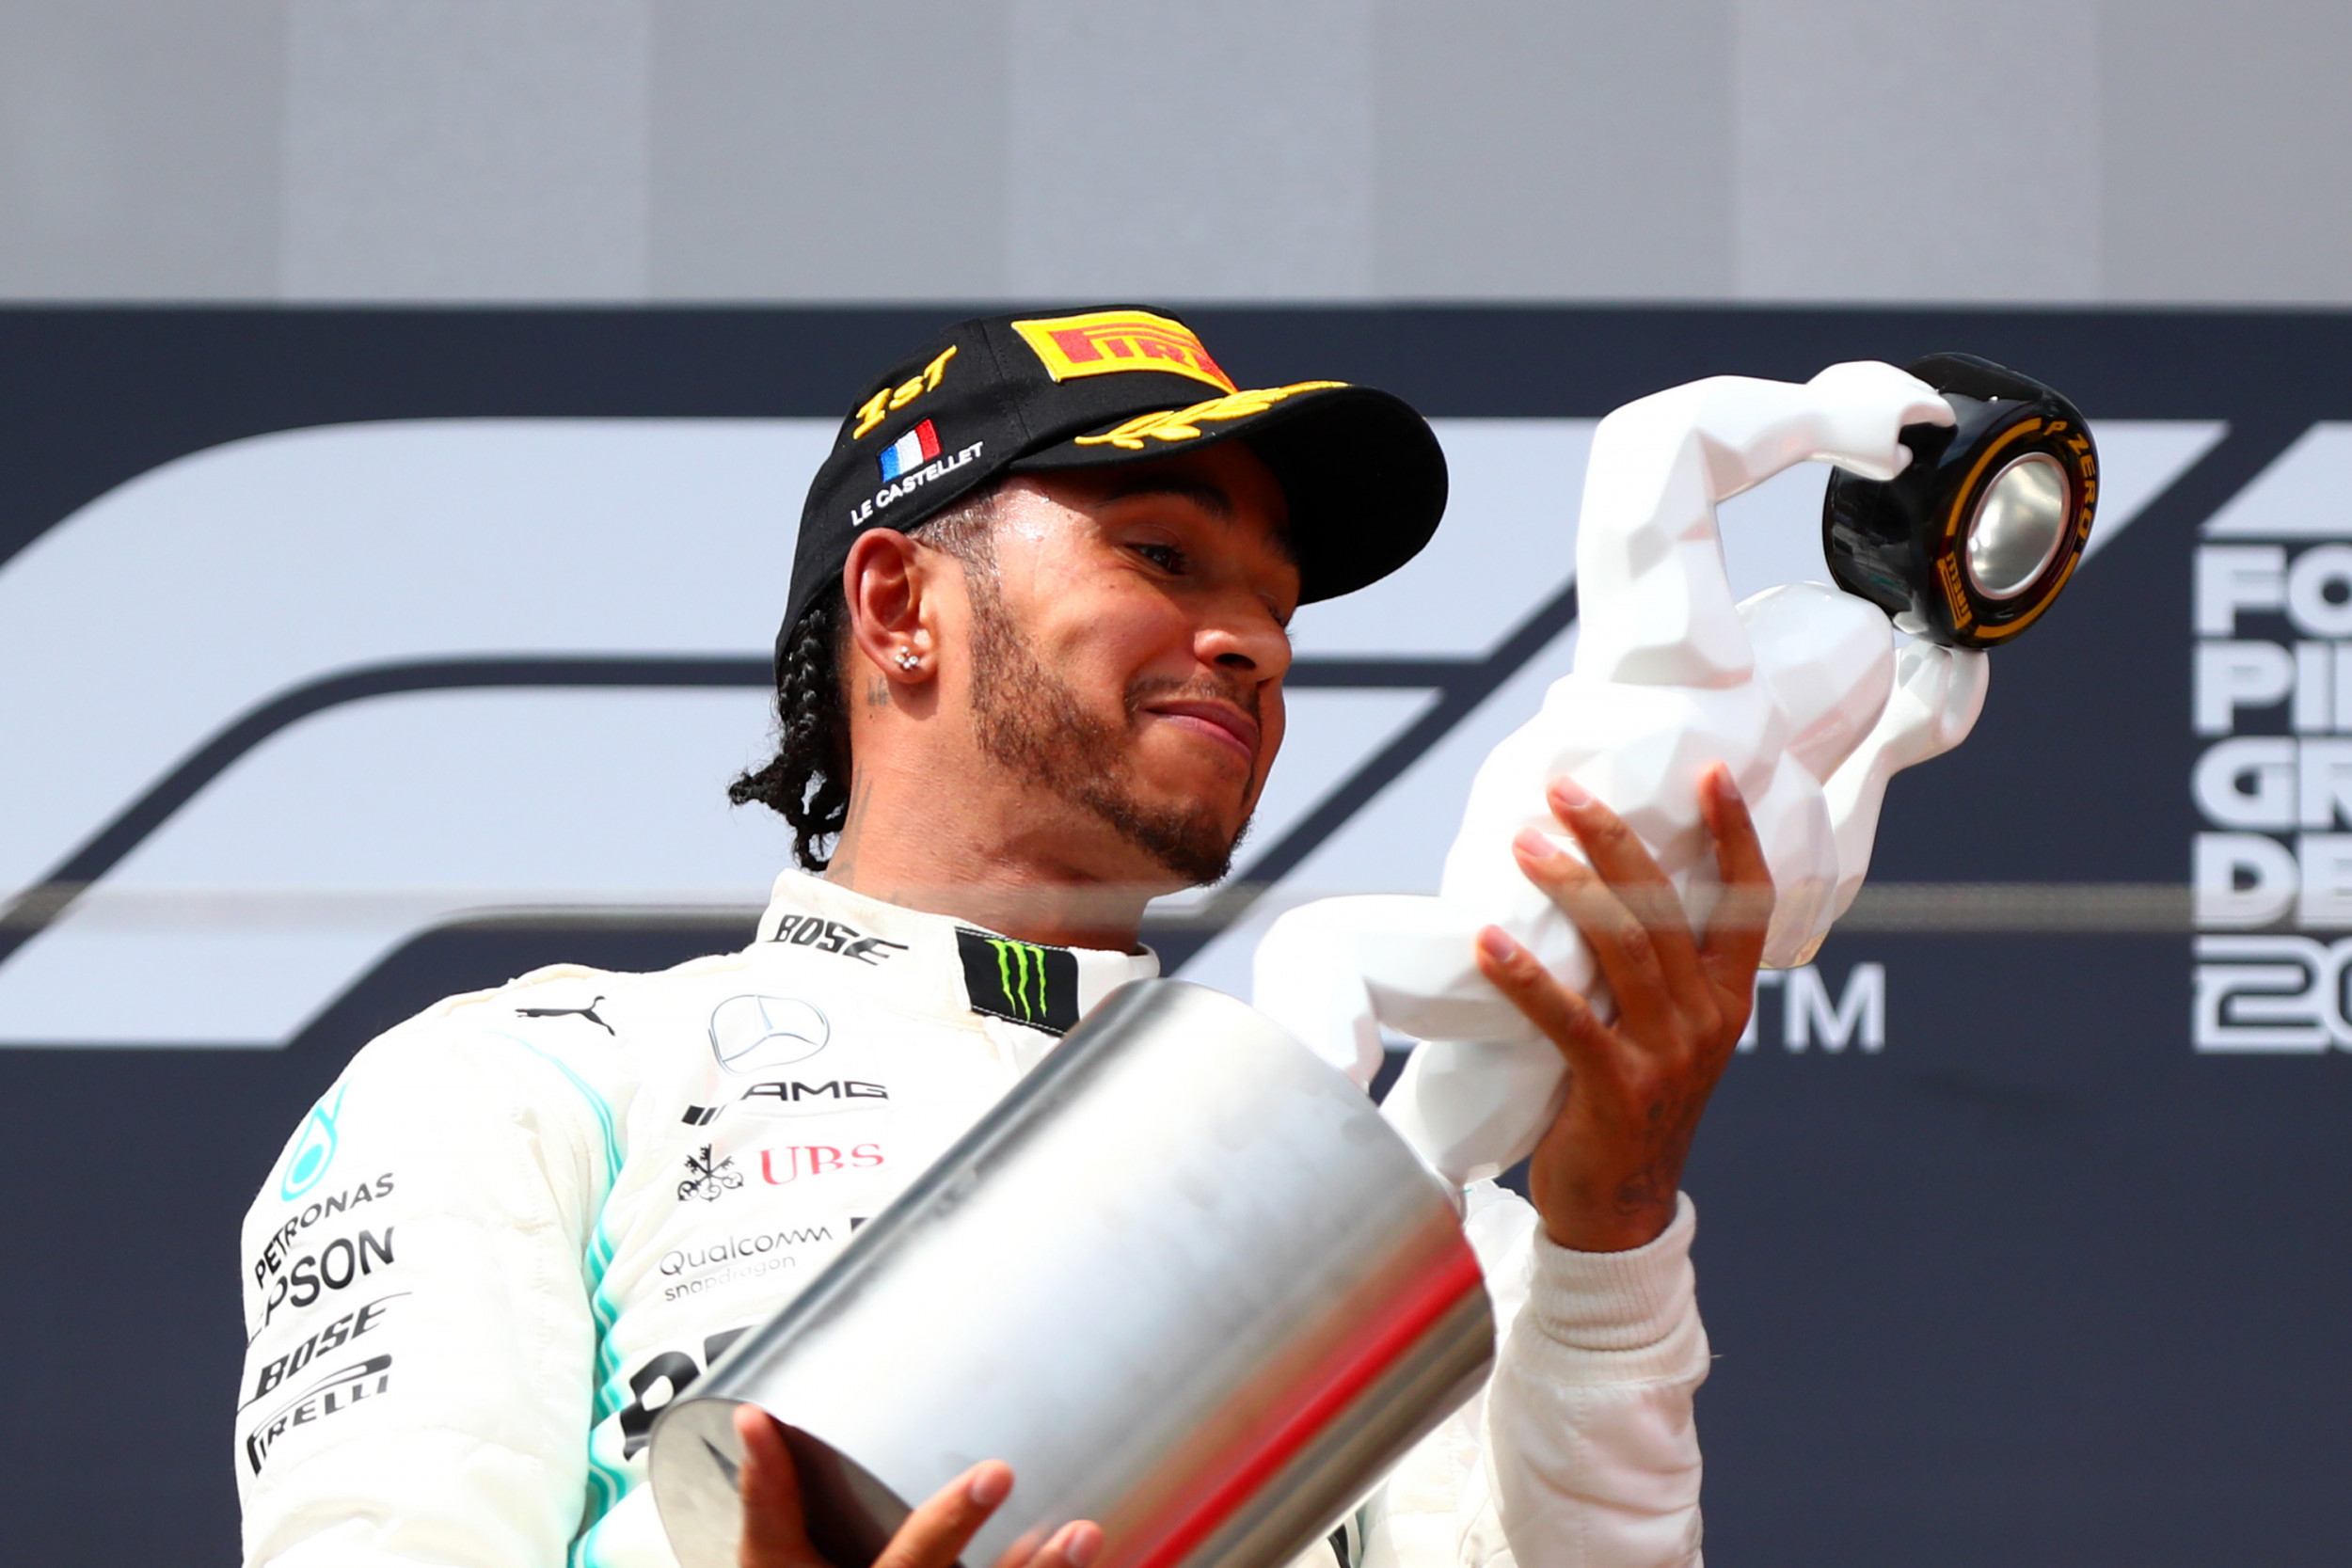 F1 Austrian Grand Prix: Start Time, TV Channel, Live Stream and